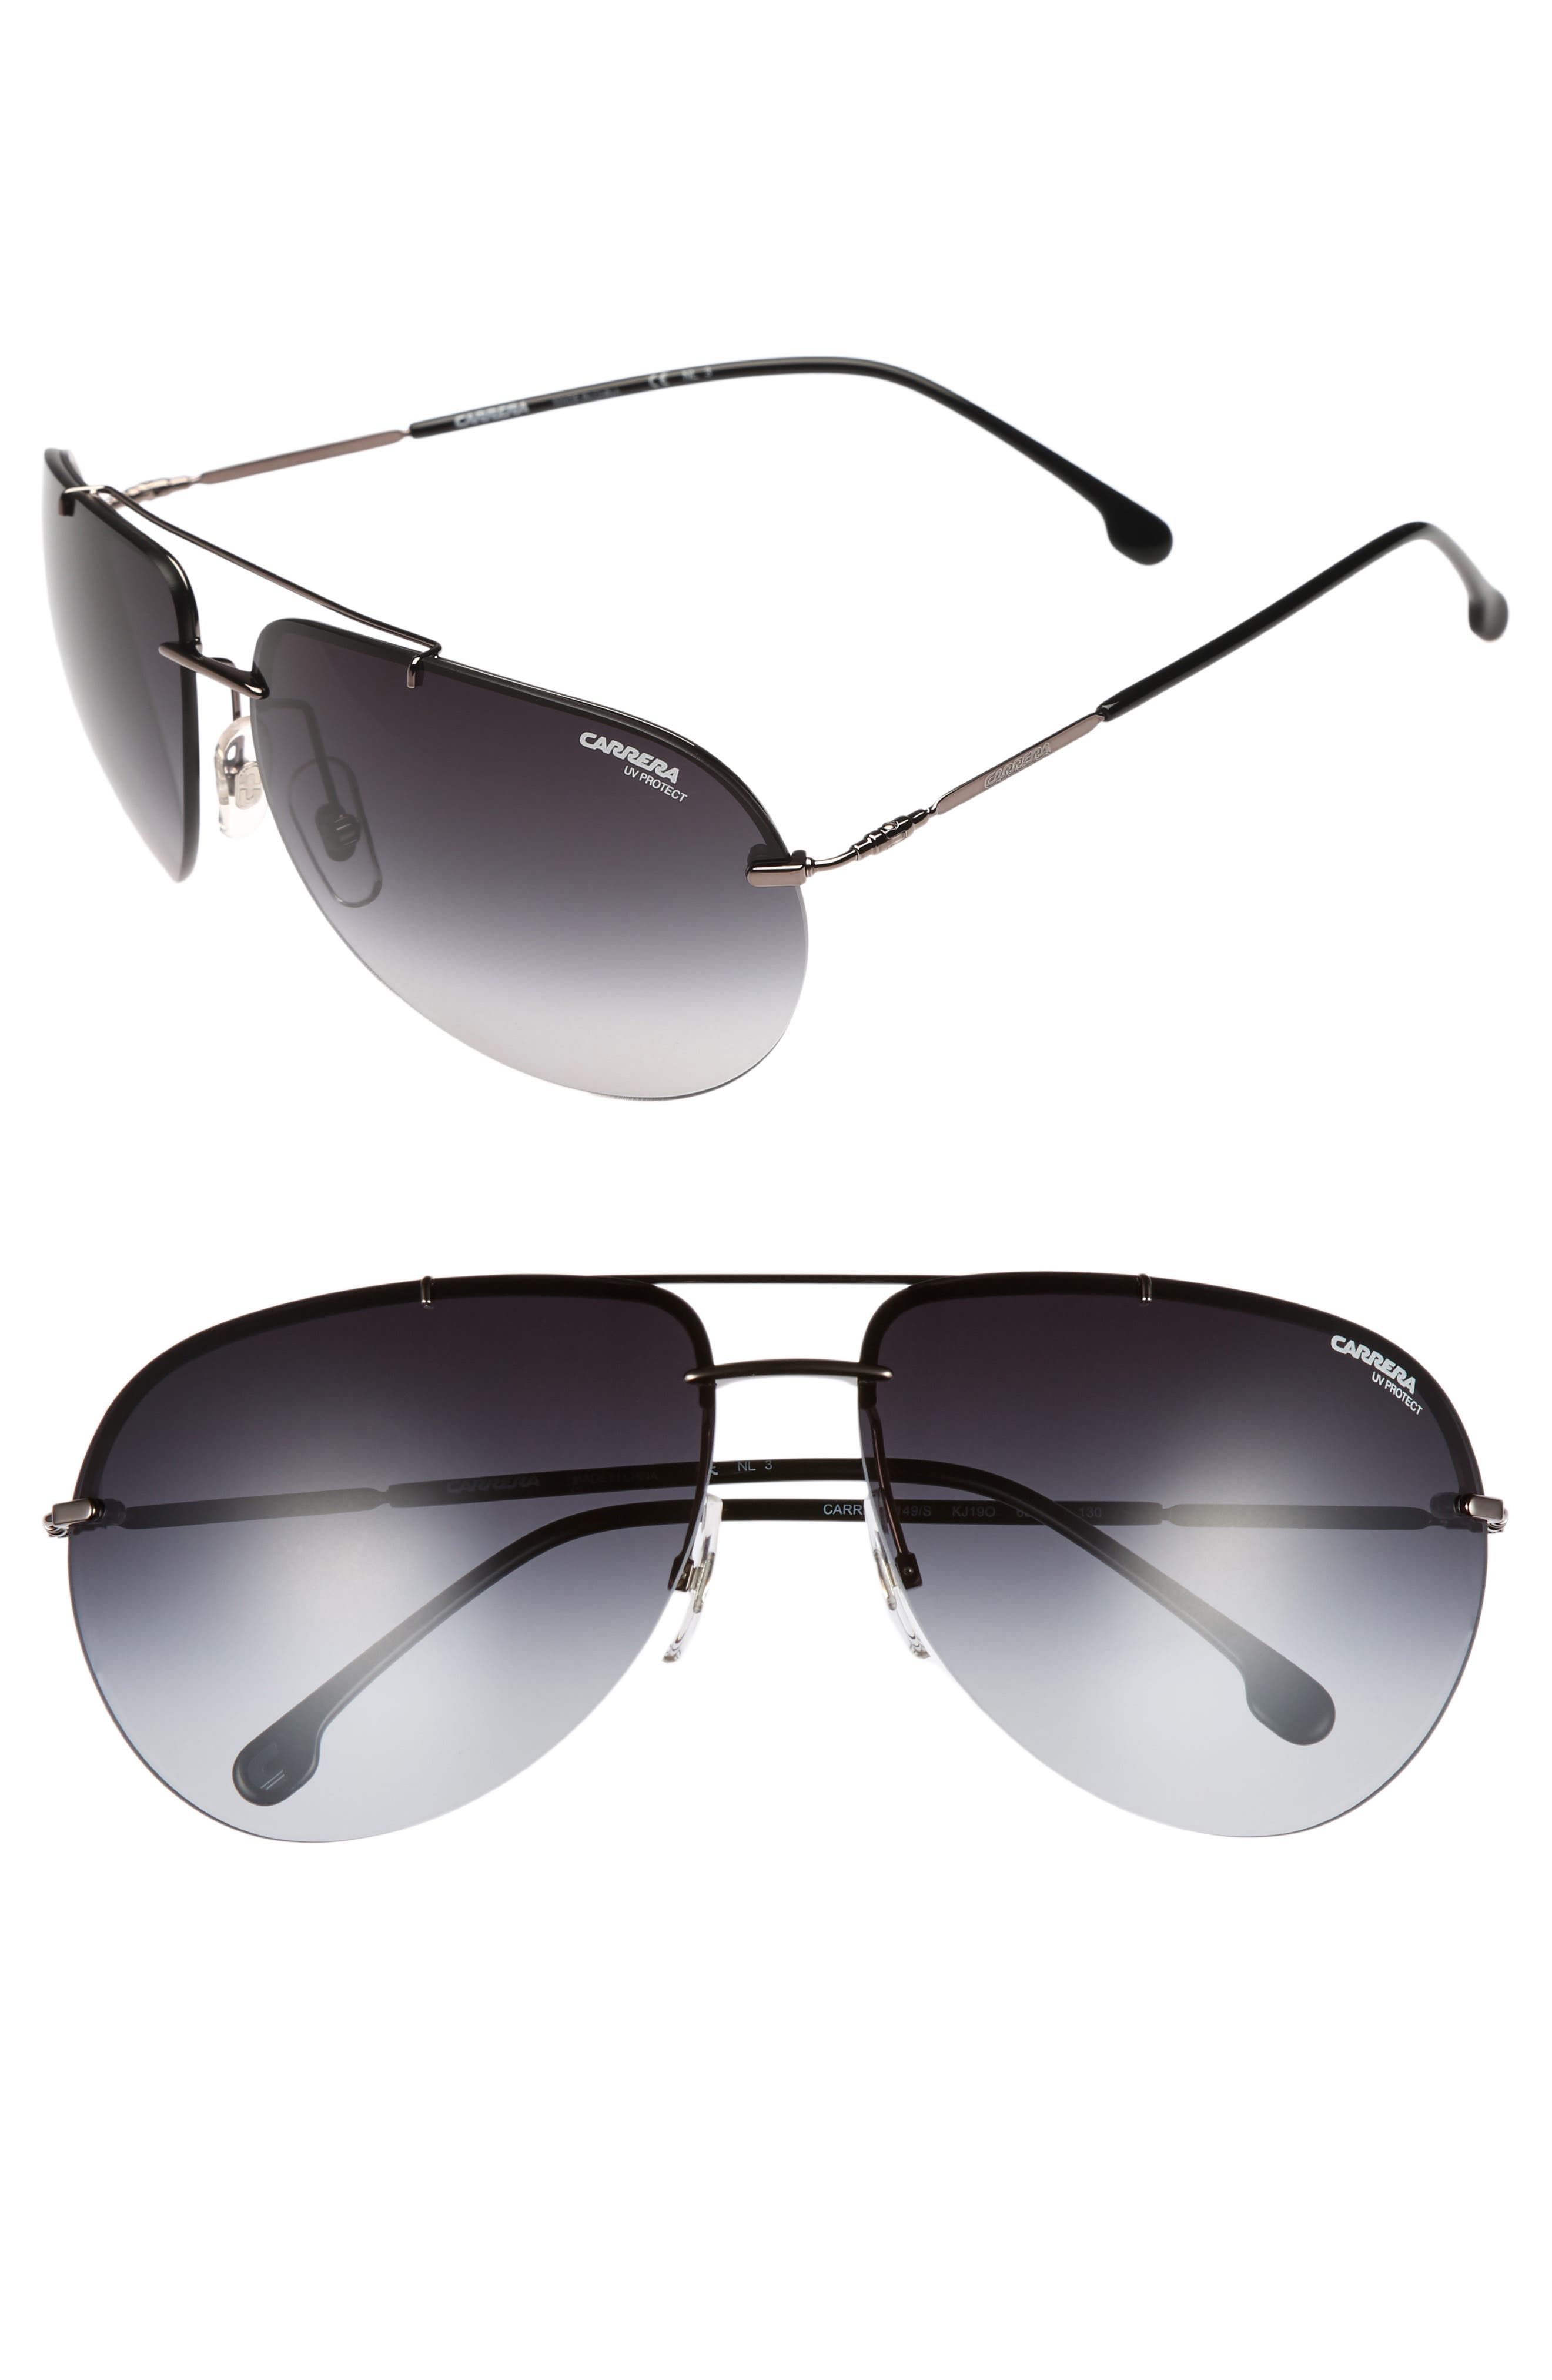 Carrera Eyewear 149S 65mm Polarized Aviator Sunglasses